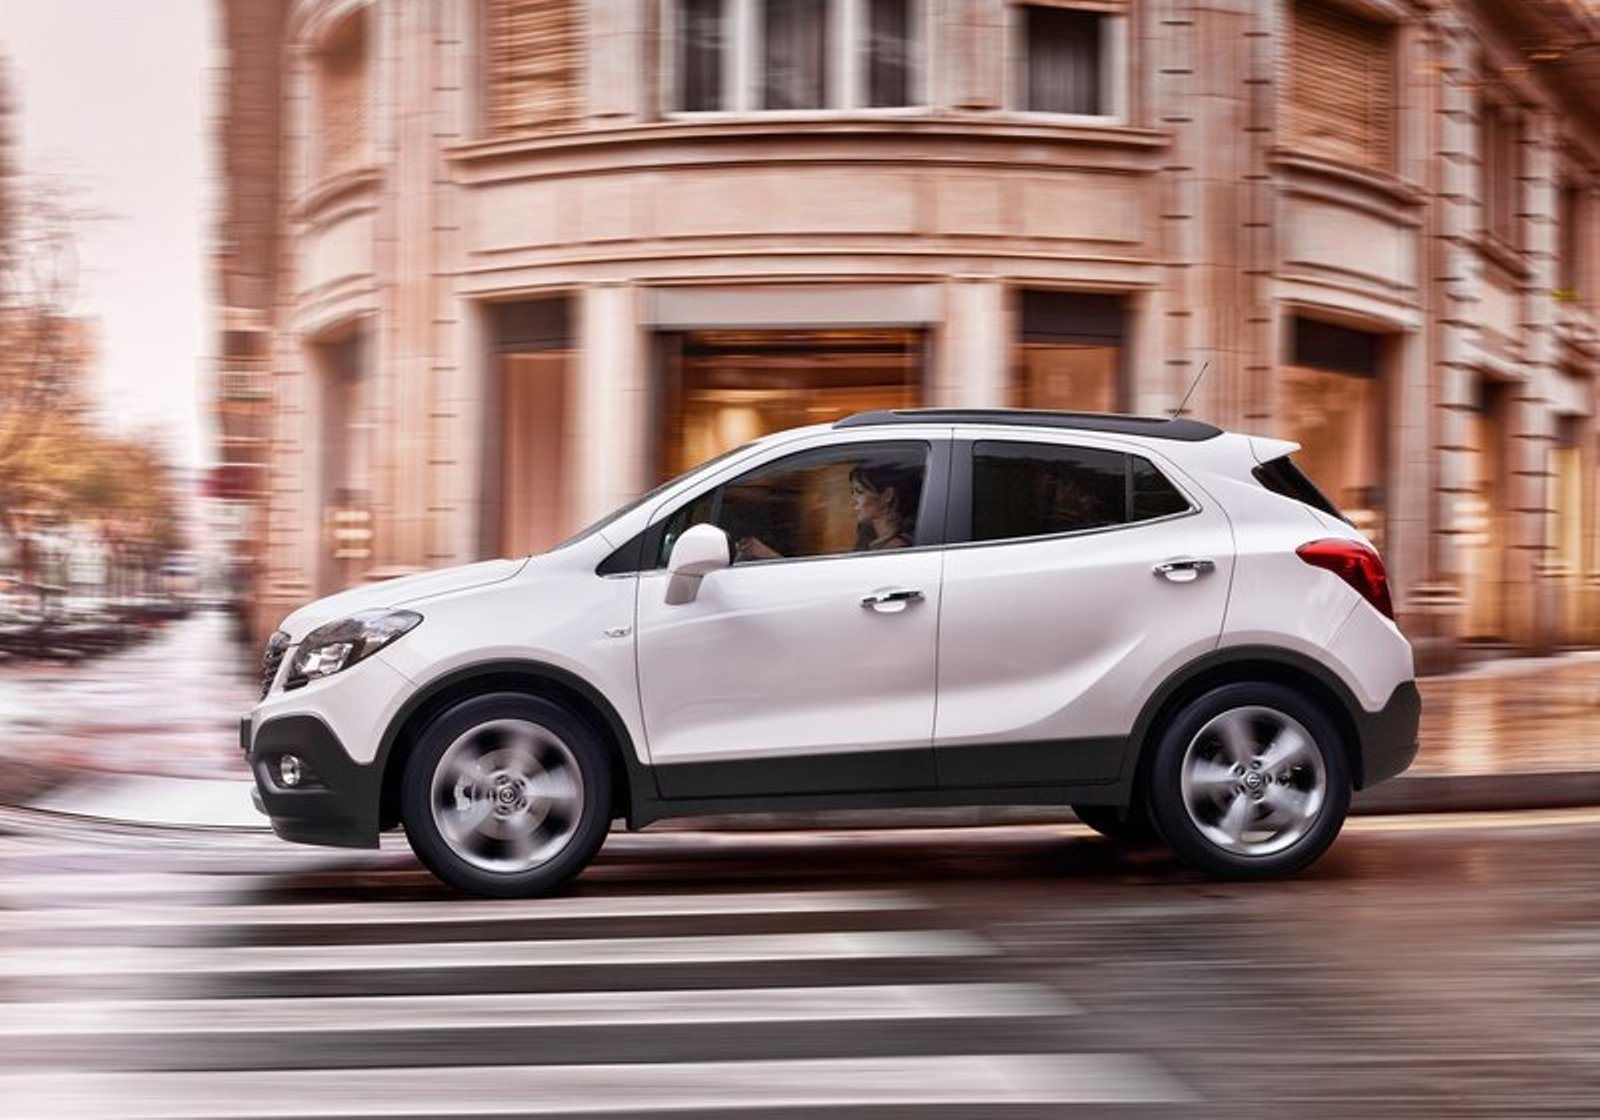 Opel mokka was mistook